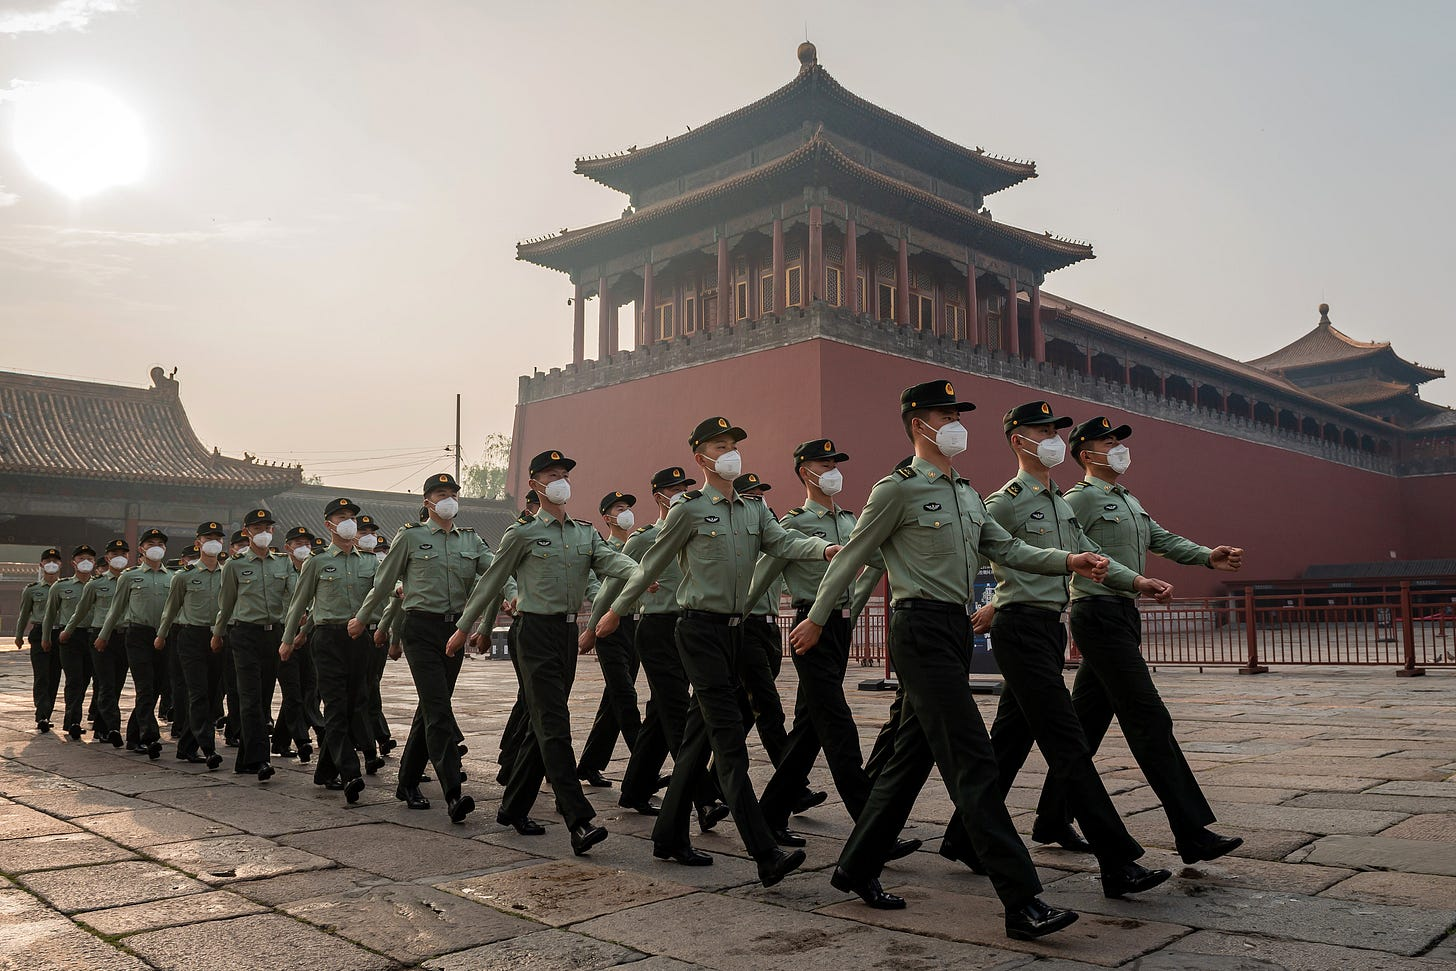 eople's Liberation Army (PLA) soldiers march next to the entrance to the Forbidden City during the opening ceremony of the Chinese People's Political Consultative Conference (CPPCC) in Beijing on May 21, 2020. - China's biggest political event of the year, the National People's Congress (NPC), opens on May 22 after months of delay over coronavirus fears, with President Xi Jinping determined to project strength and control over the outbreak despite international criticism and a wounded economy. (Photo by NICOLAS ASFOURI / AFP) (Photo by NICOLAS ASFOURI/AFP via Getty Images)